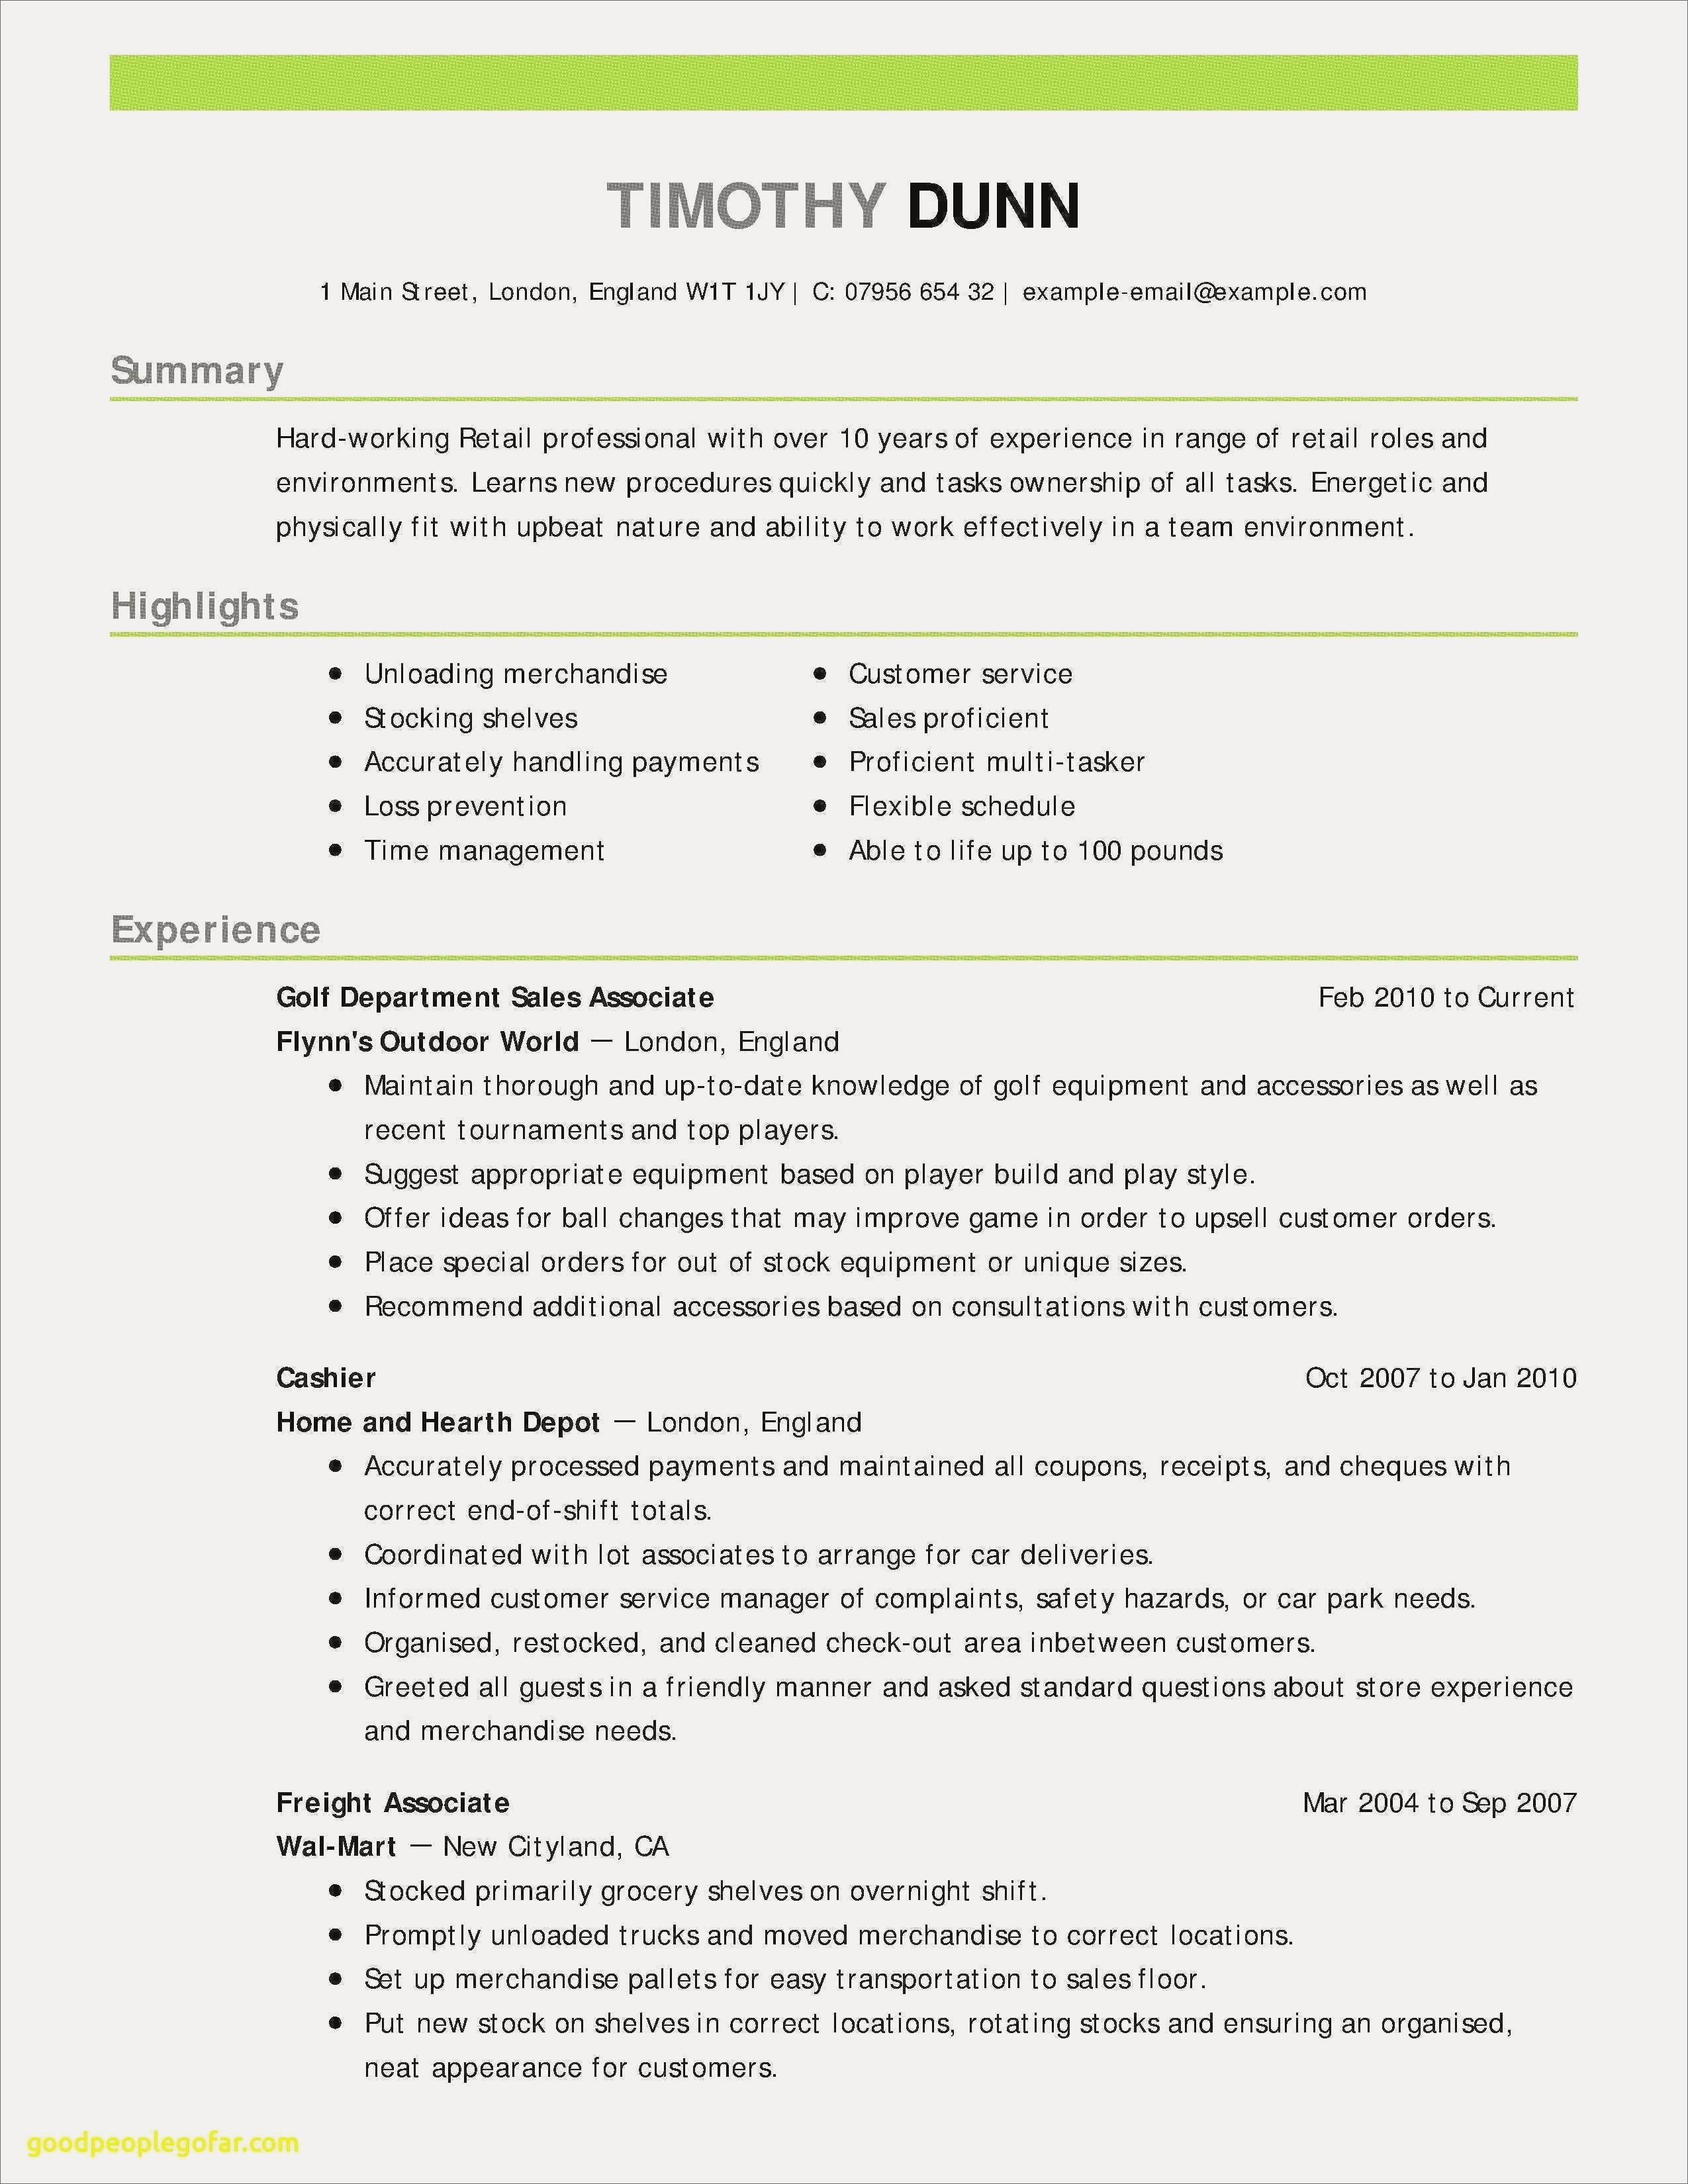 Maintenance Resume Template - Resume Skills Examples for Customer Service Best Customer Service